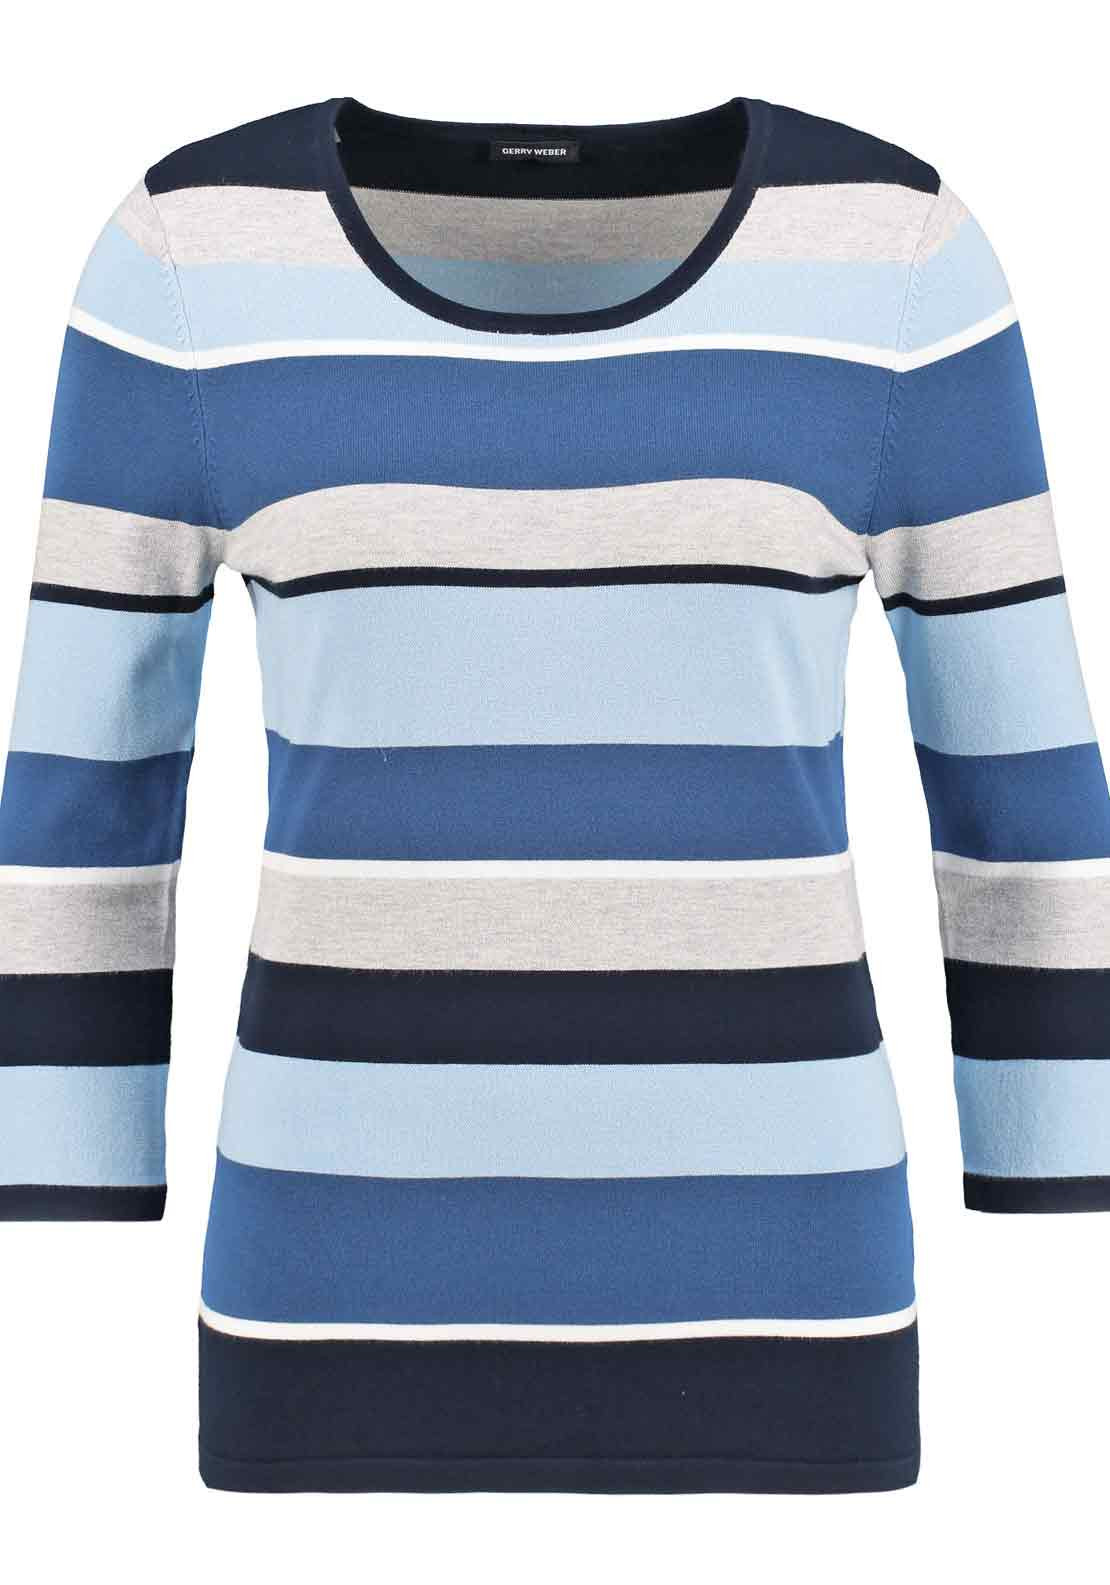 Gerry Weber Striped Cropped Sleeve Sweater Jumper, Blue and Navy